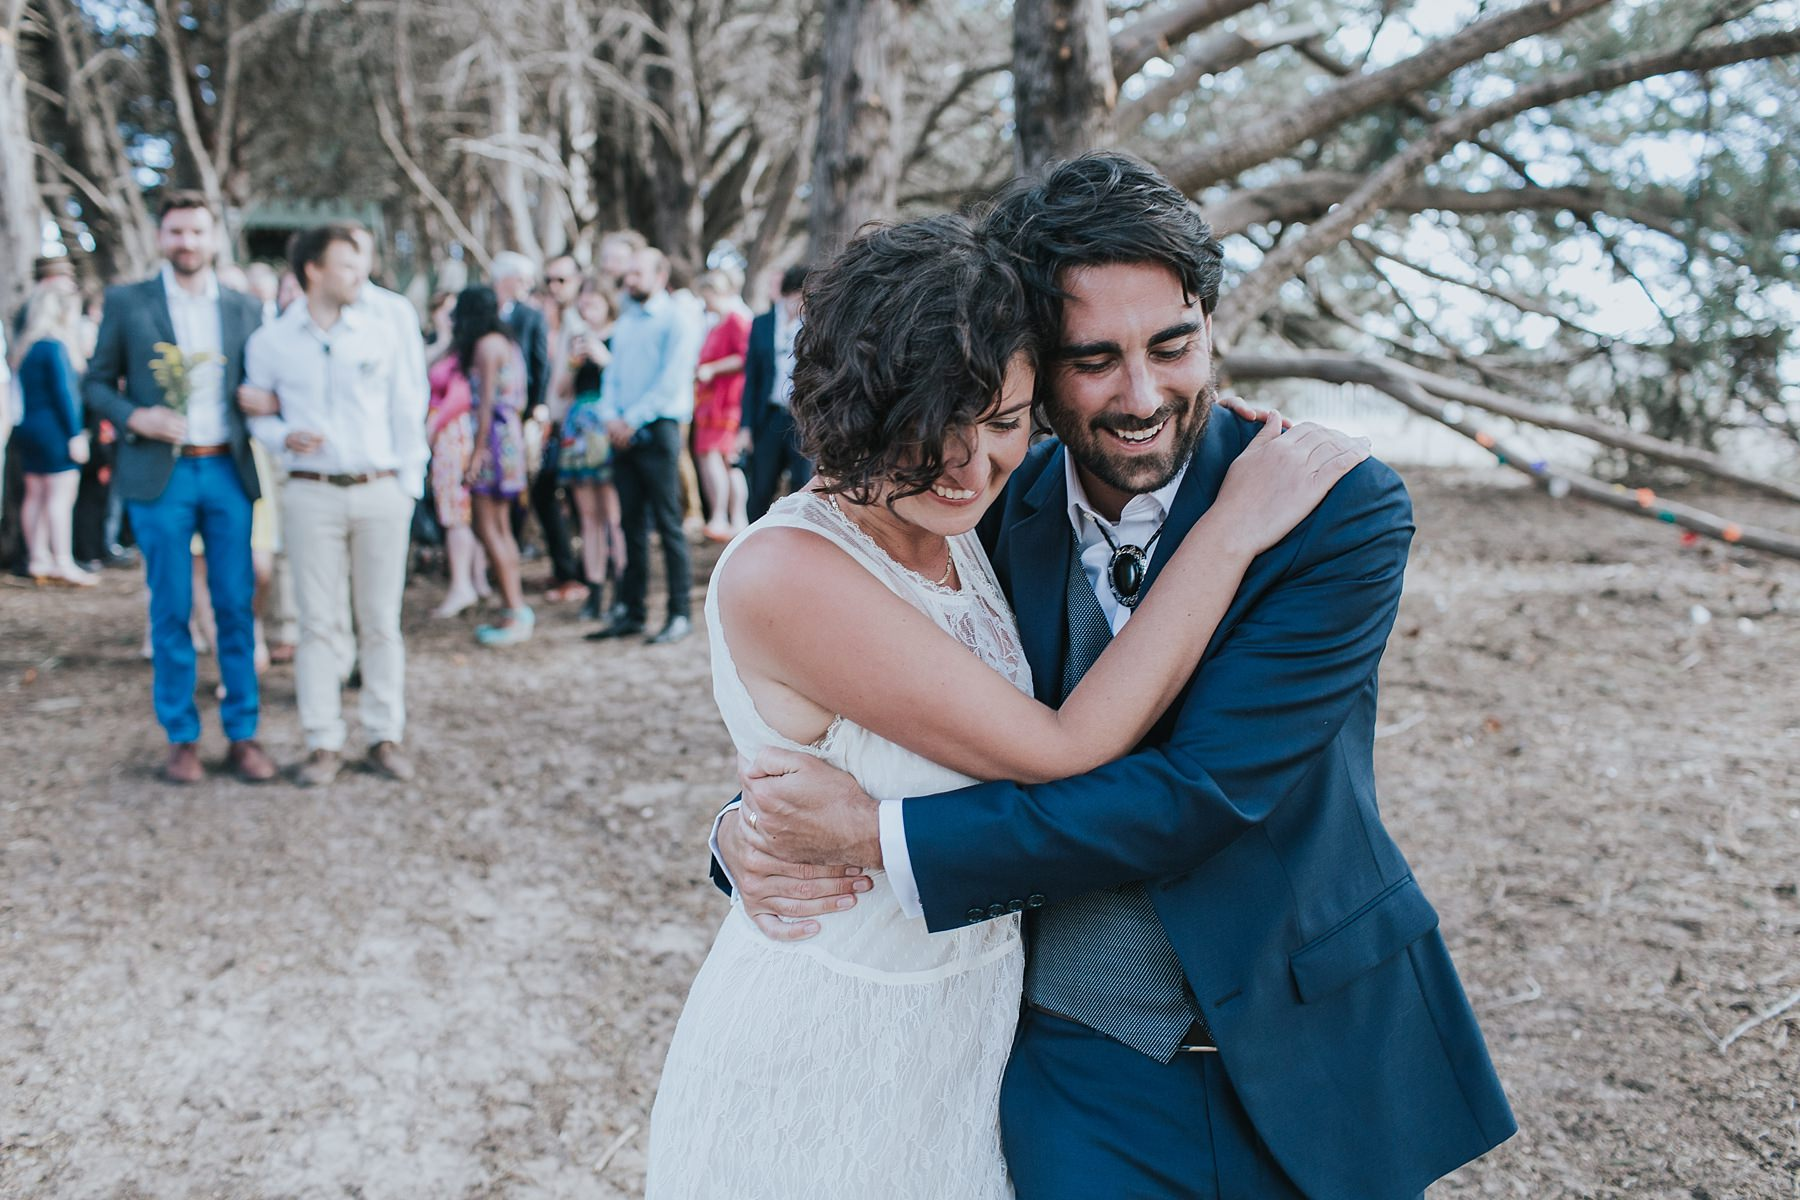 bride and groom in a tight embrace